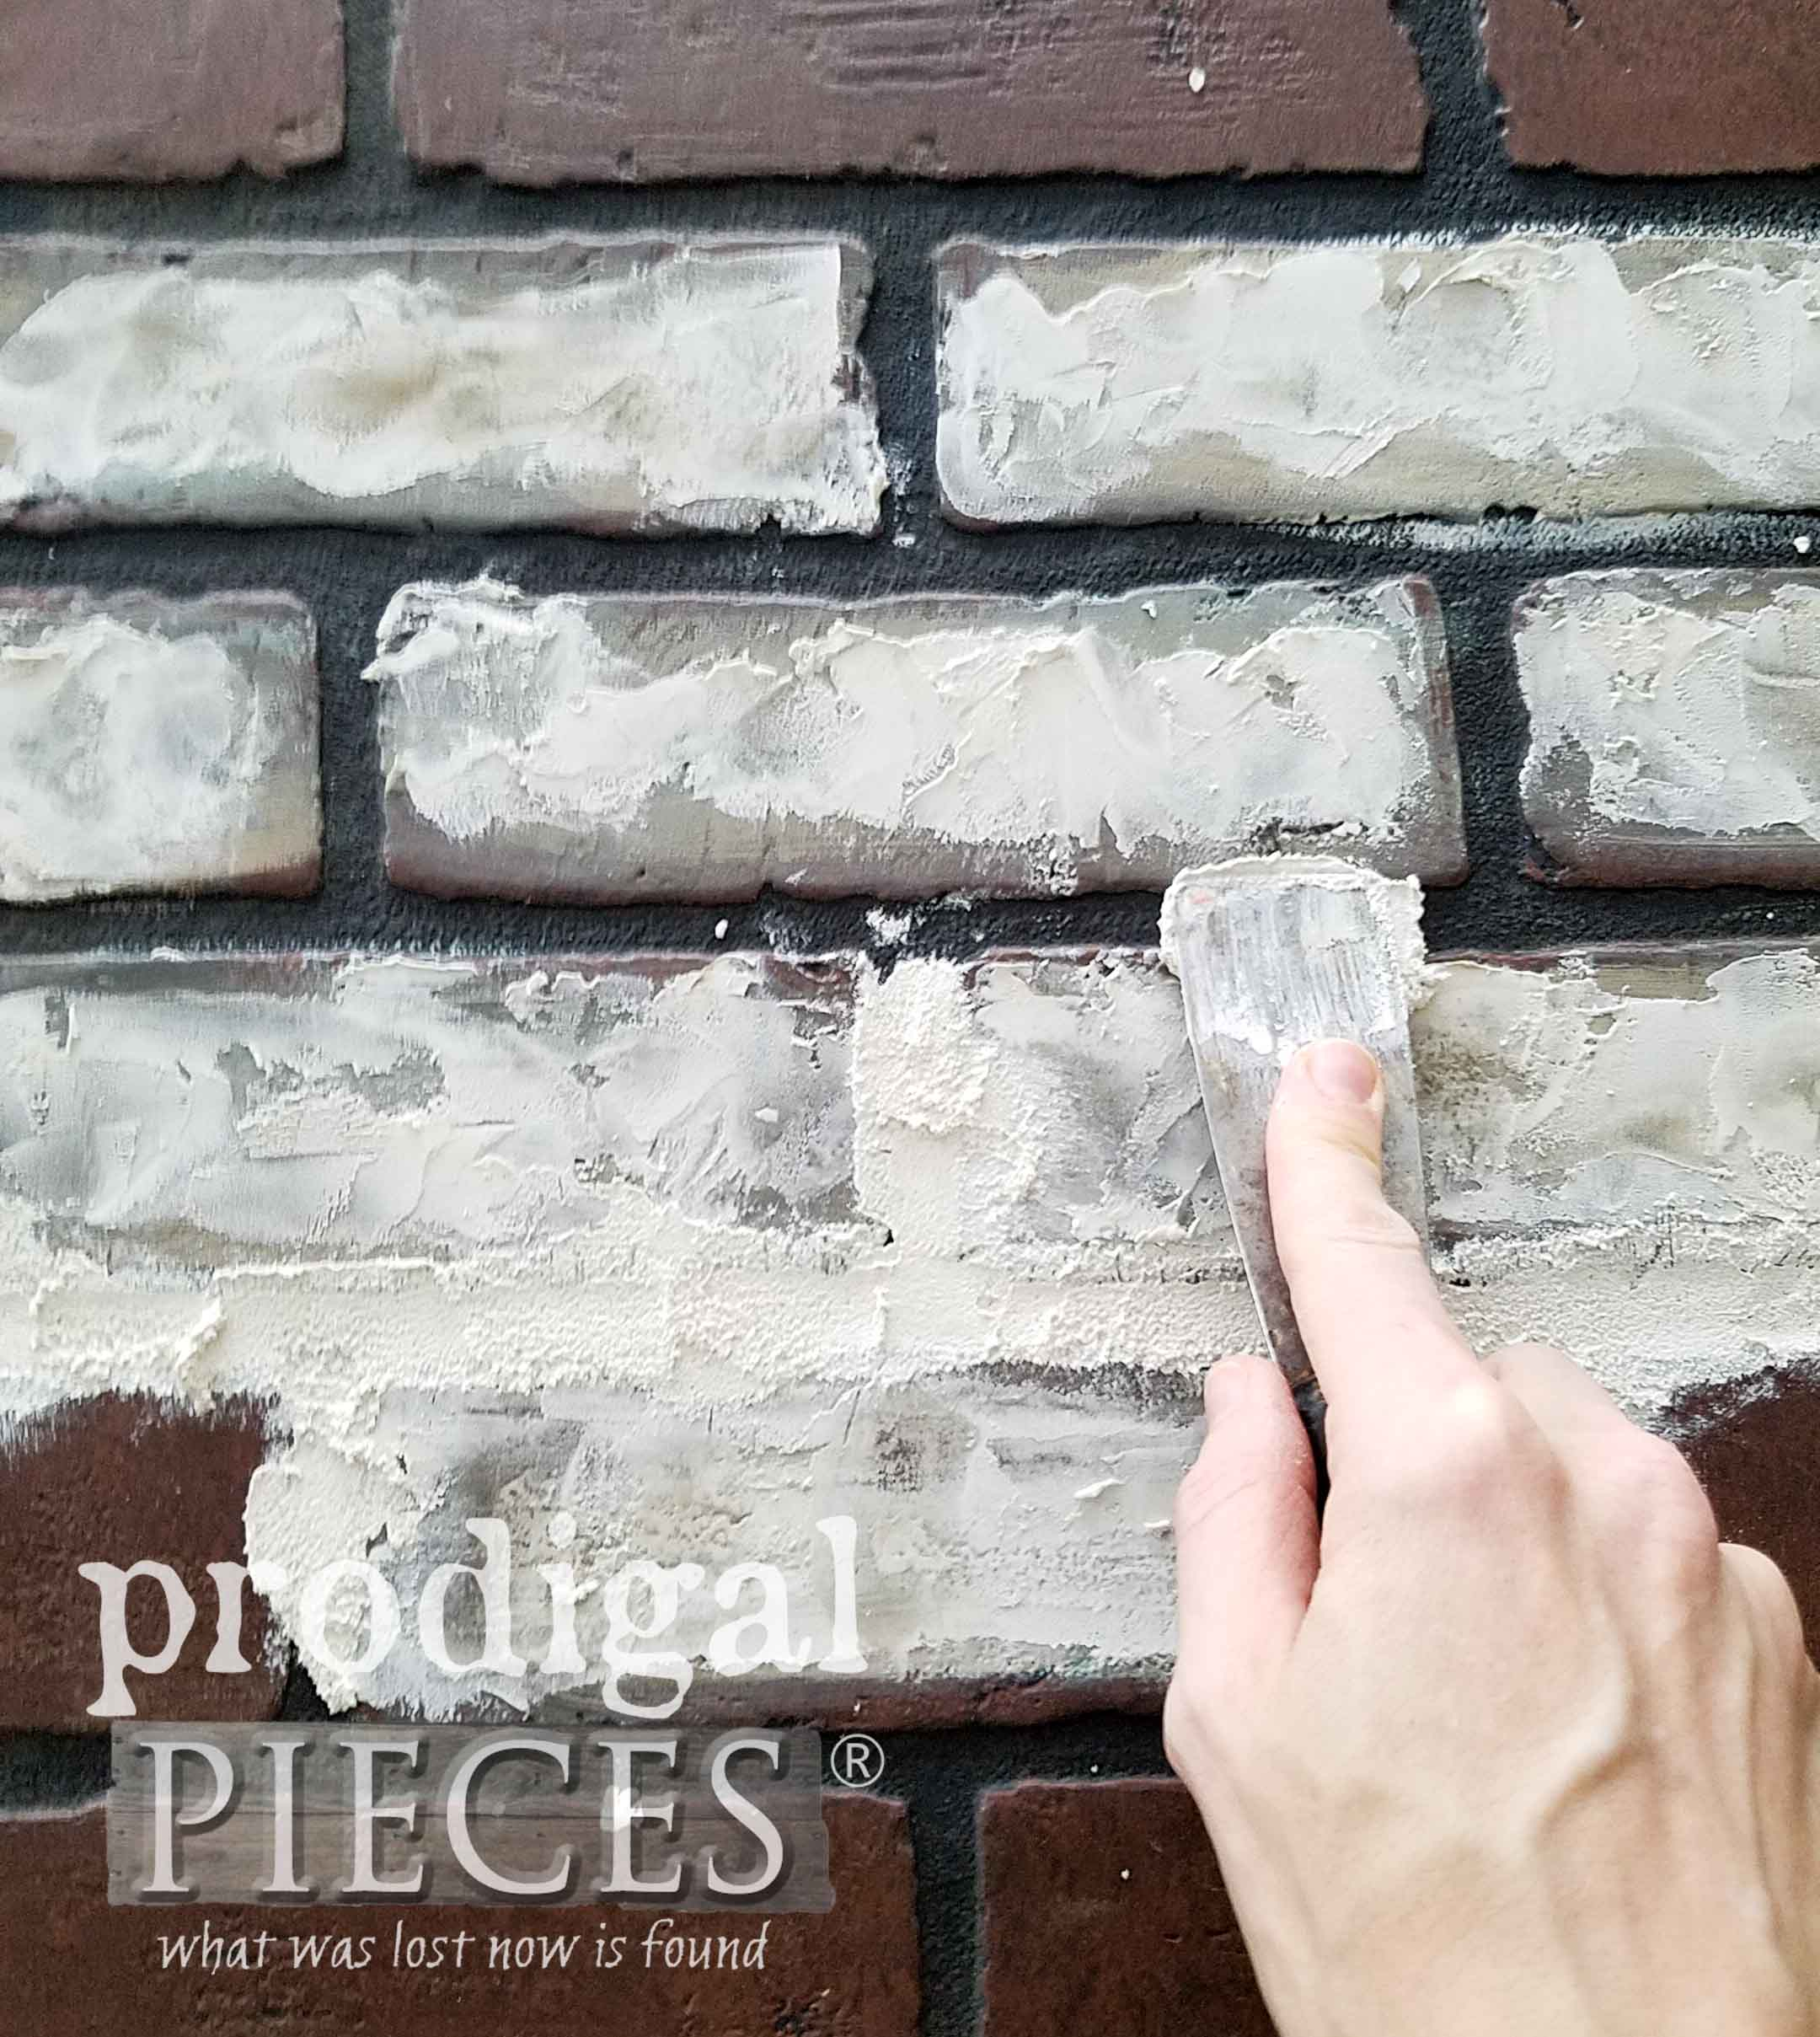 Applying Grout for Faux Brick Effect by Prodigal Pieces | prodigalpieces.com